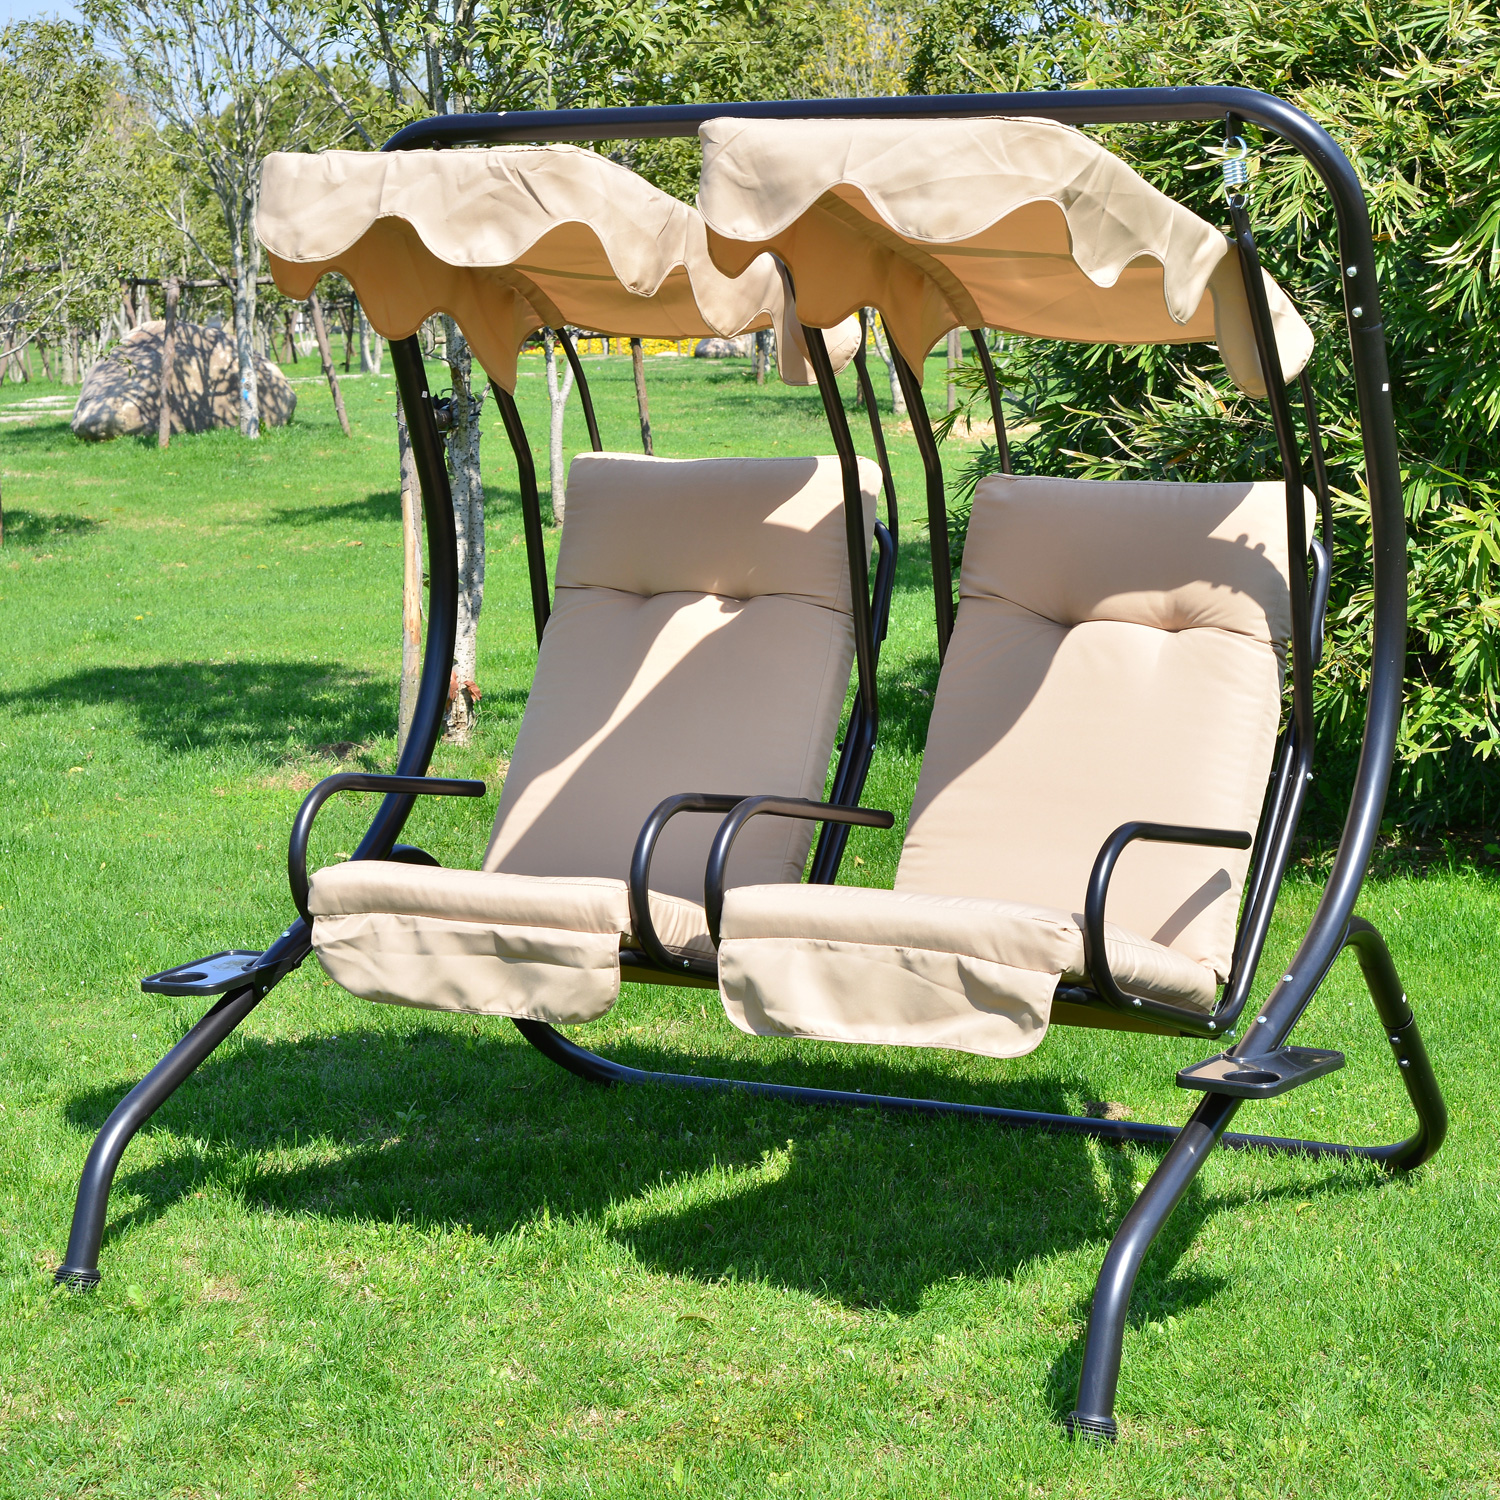 Outsunny Outdoor Garden Patio Covered Double Swing w/ Frame - Sand